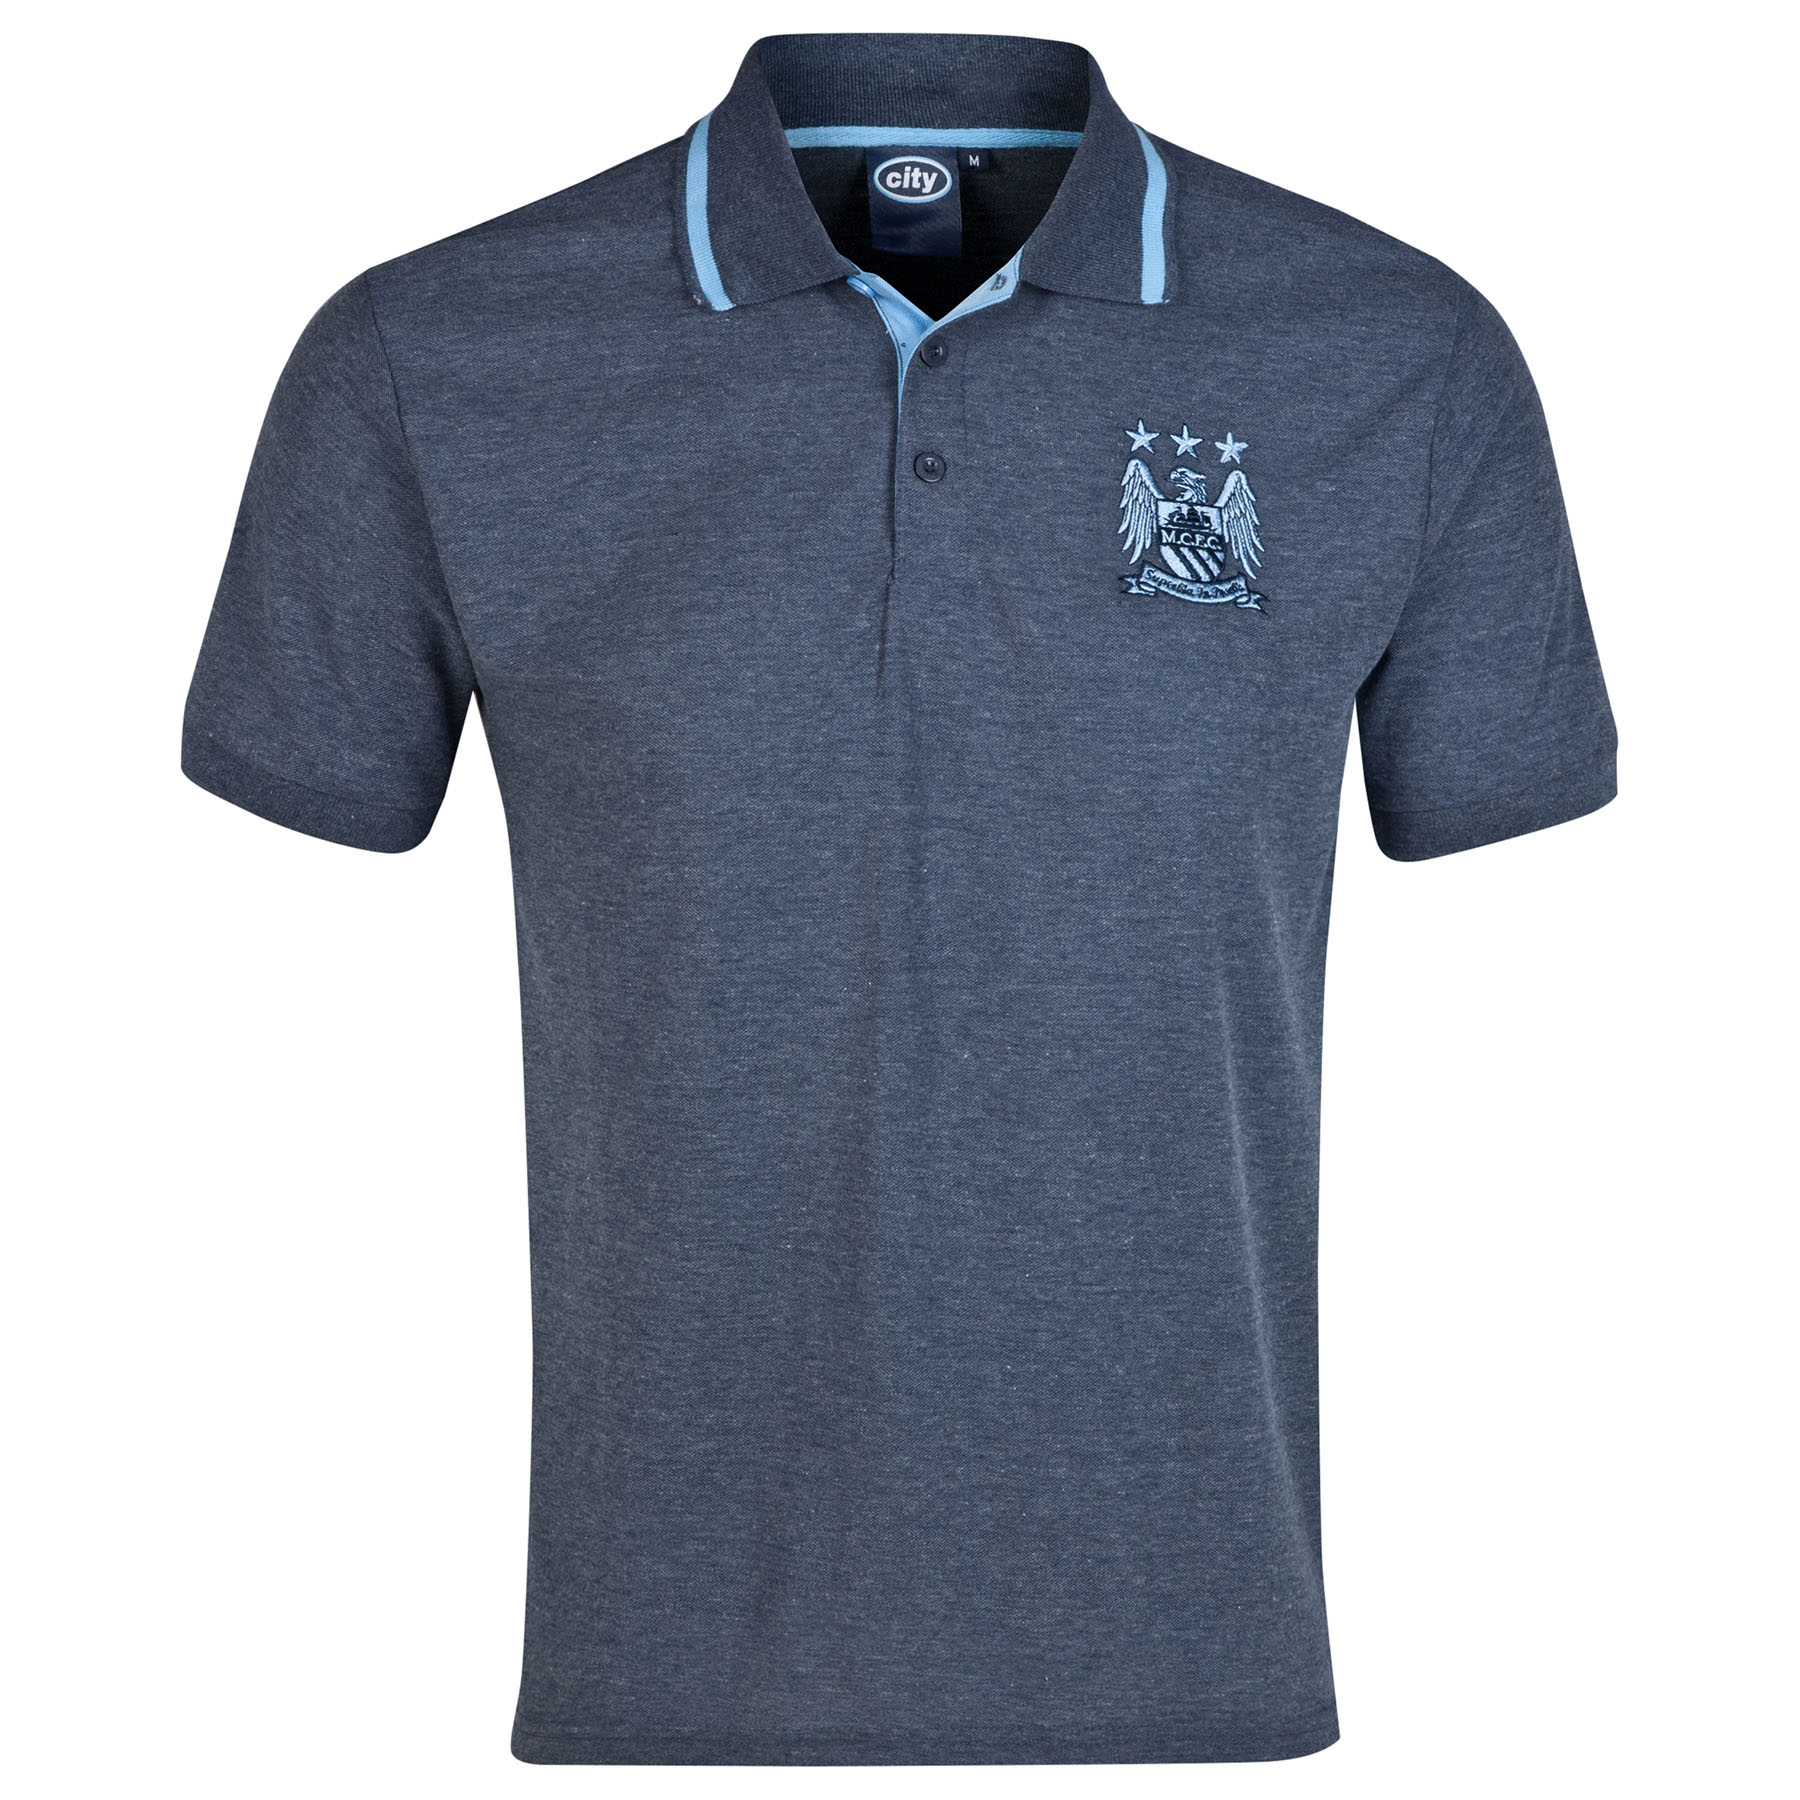 Manchester City Essential Polo Shirt - Heather Navy - Mens